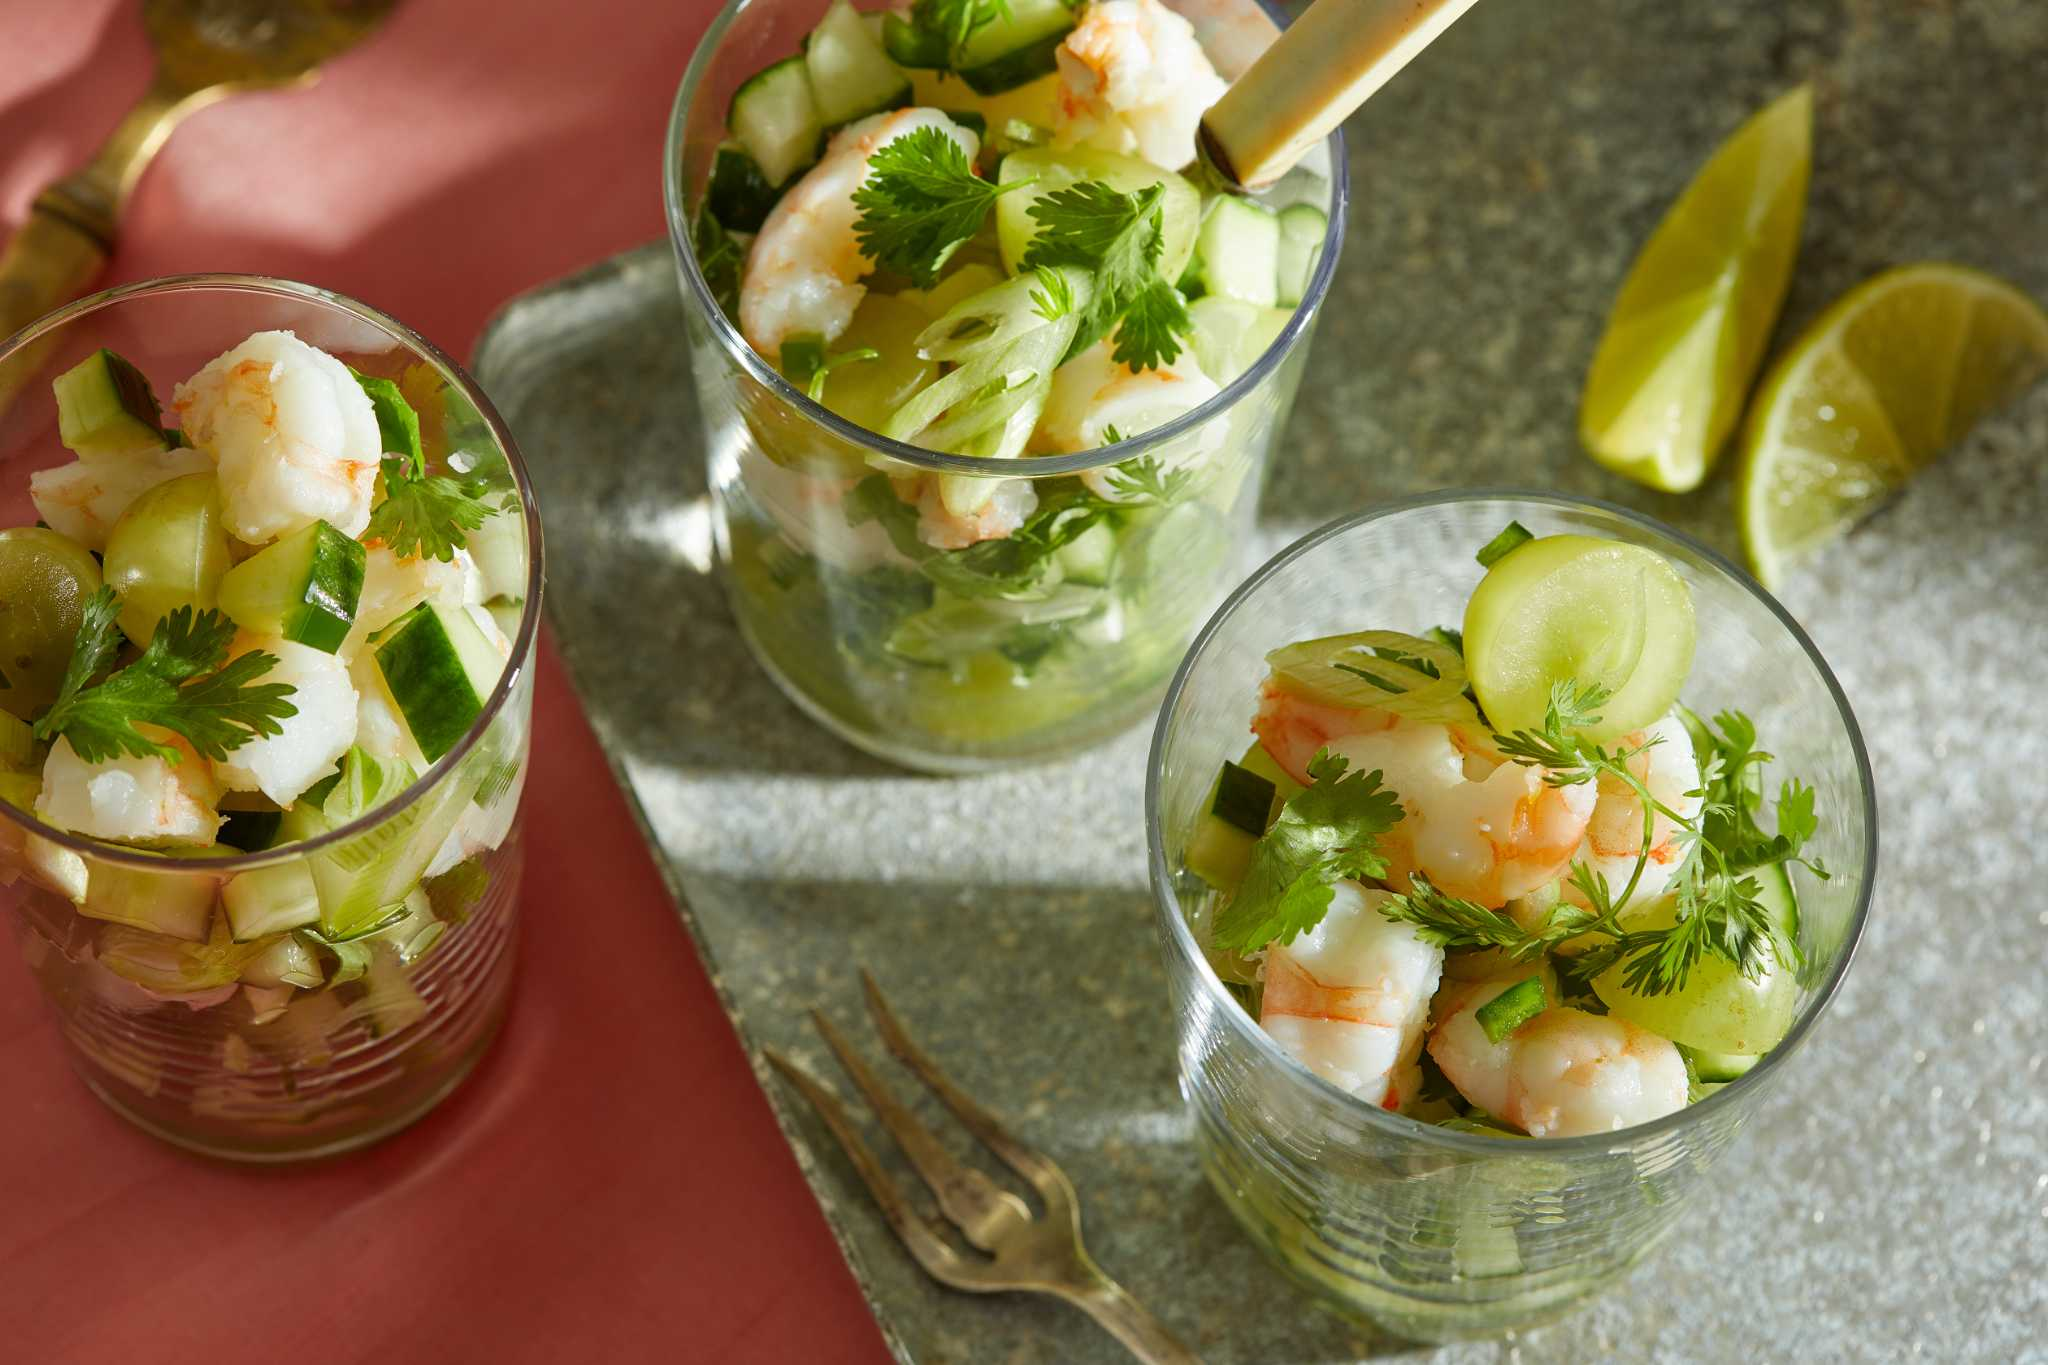 Half ceviche, half shrimp cocktail, this cool, bright dish is thoroughly refreshing